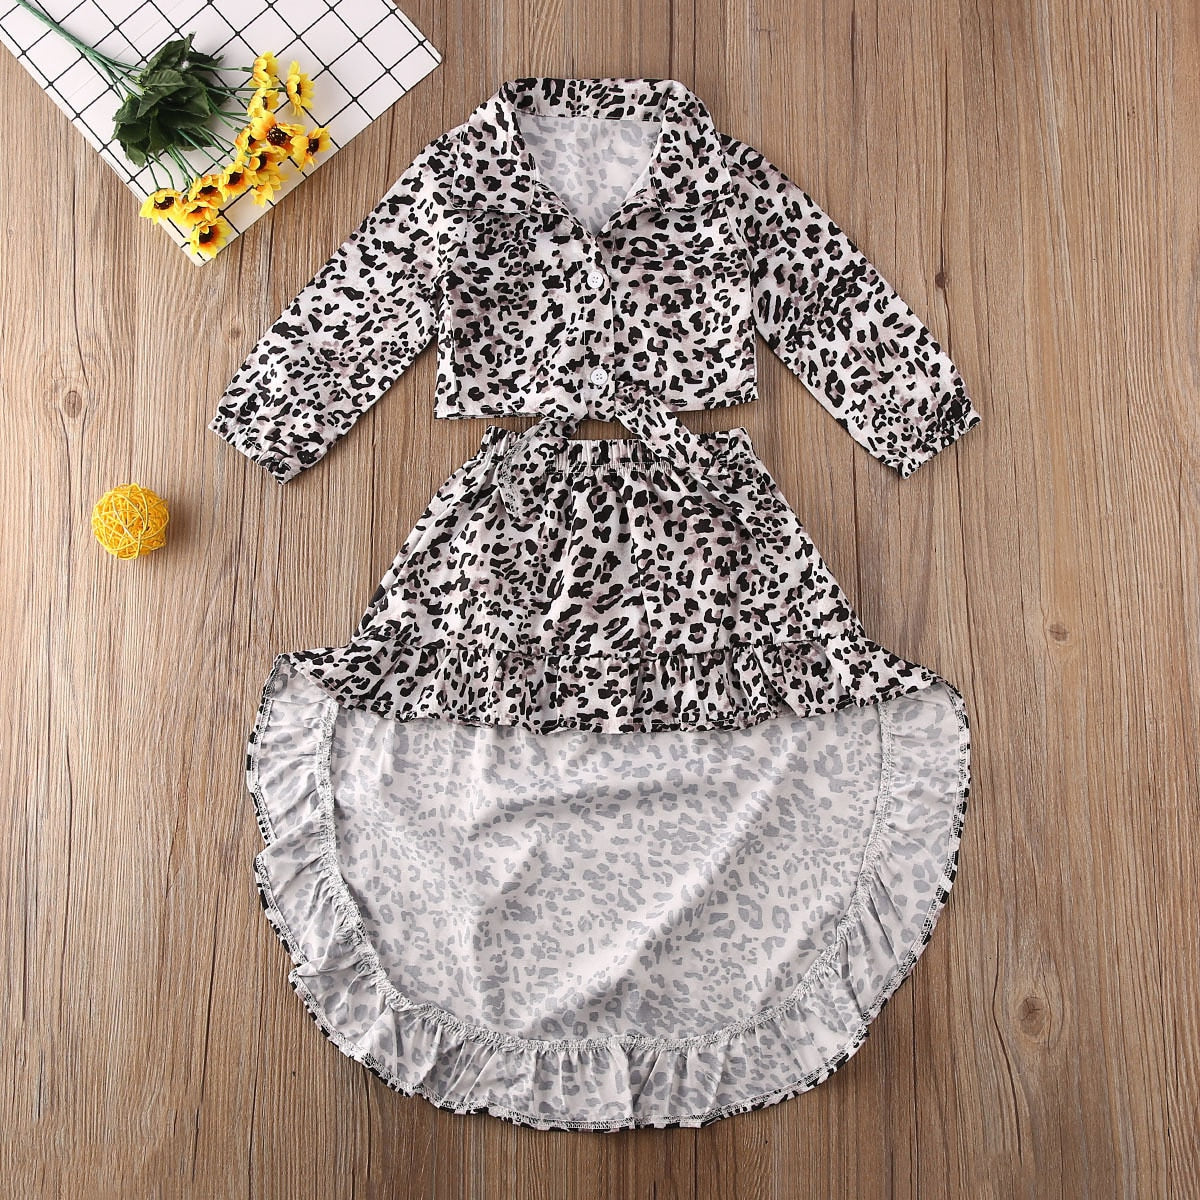 Leopard Print Top & Fishtail Skirt : 1-6 years